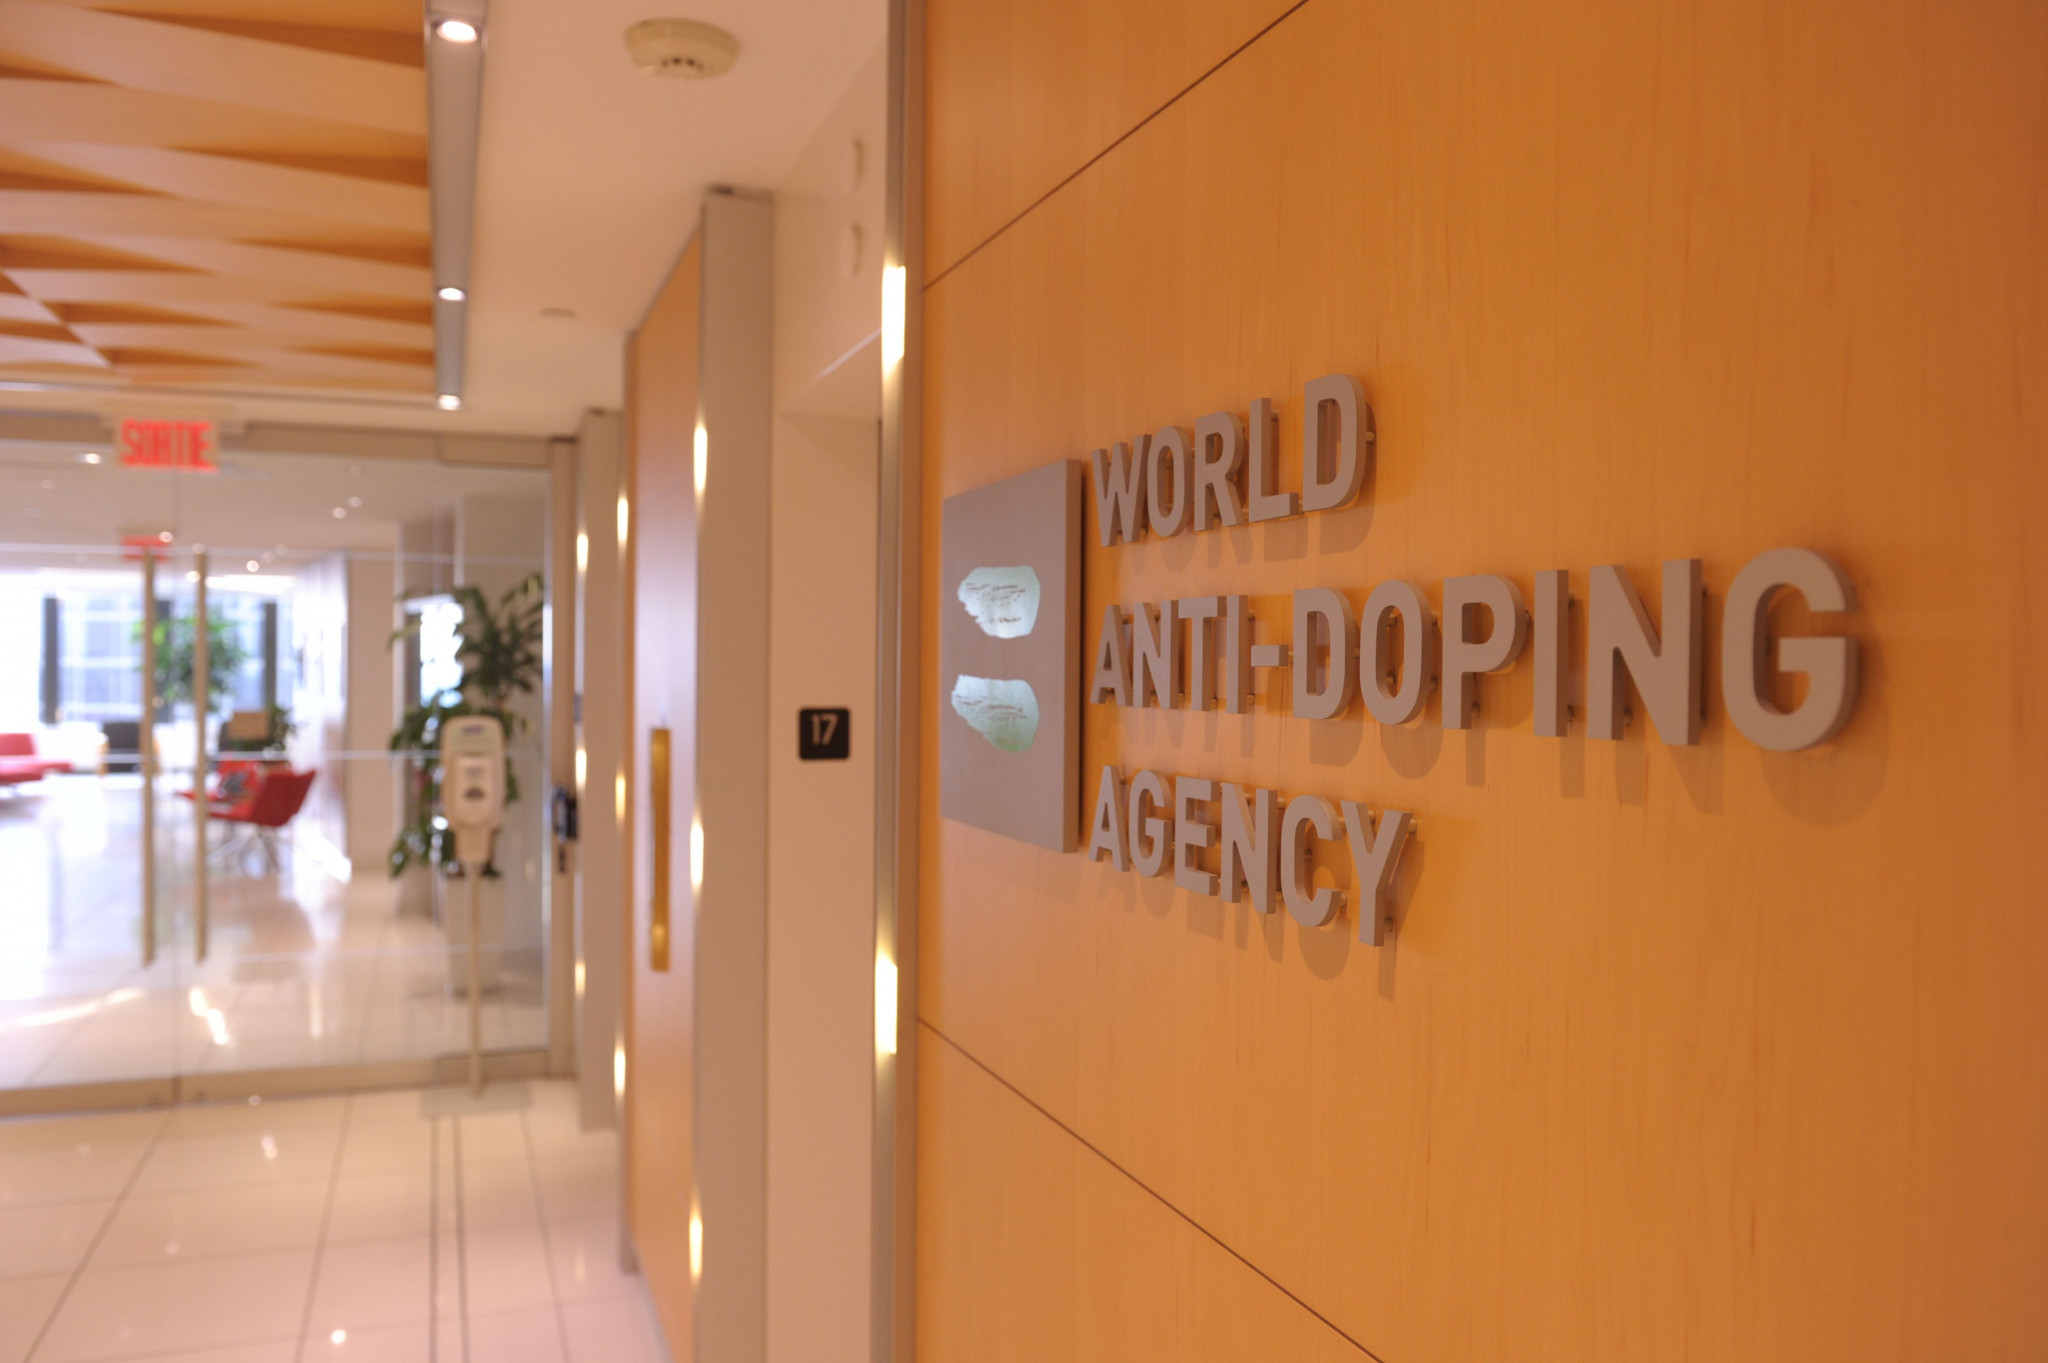 The World Anti-Doping Agency made Russian non-compliant in 2015 ©Getty Images